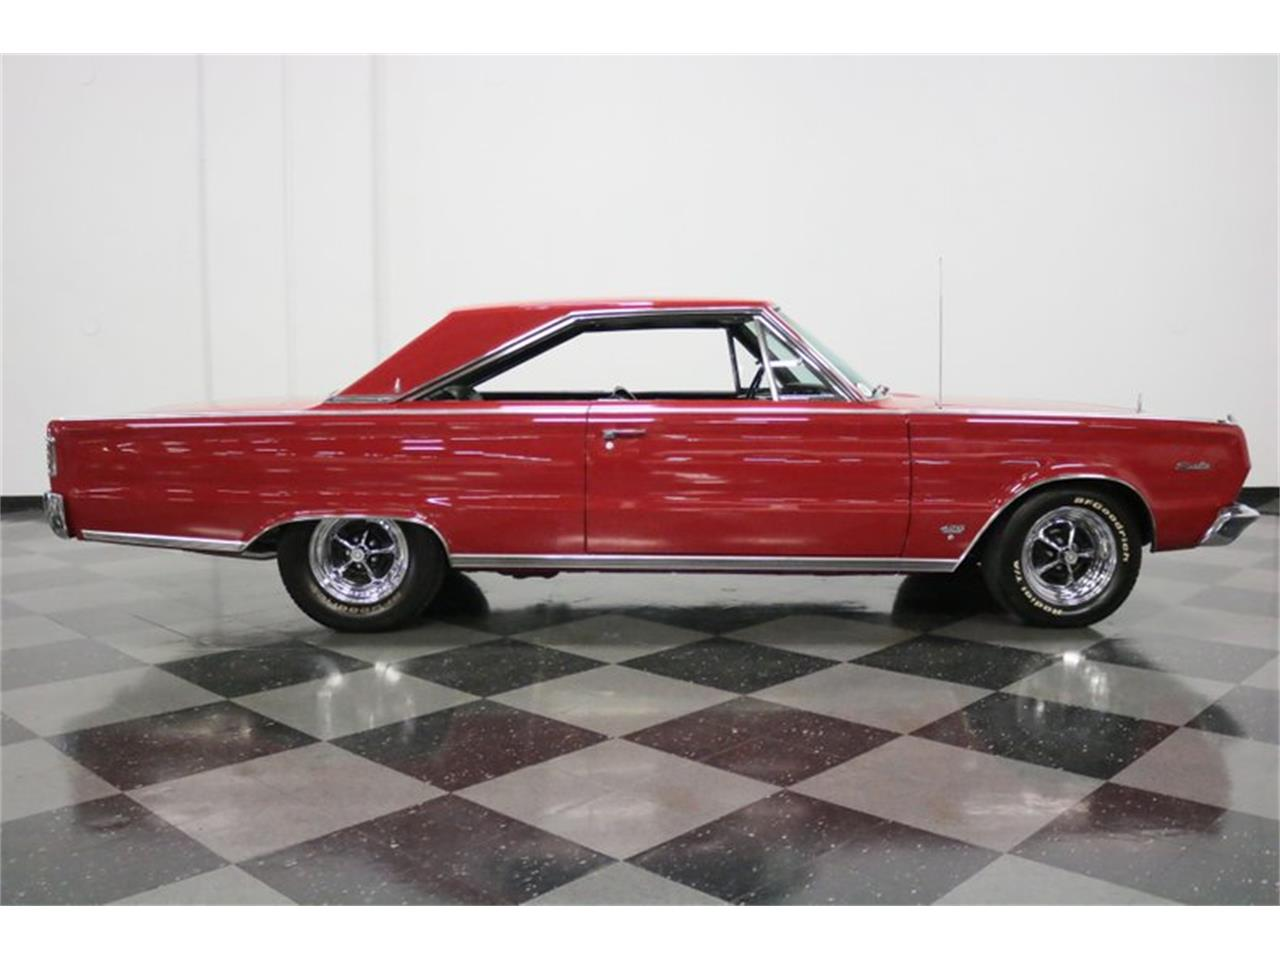 1966 Plymouth Satellite (CC-1258548) for sale in Ft Worth, Texas